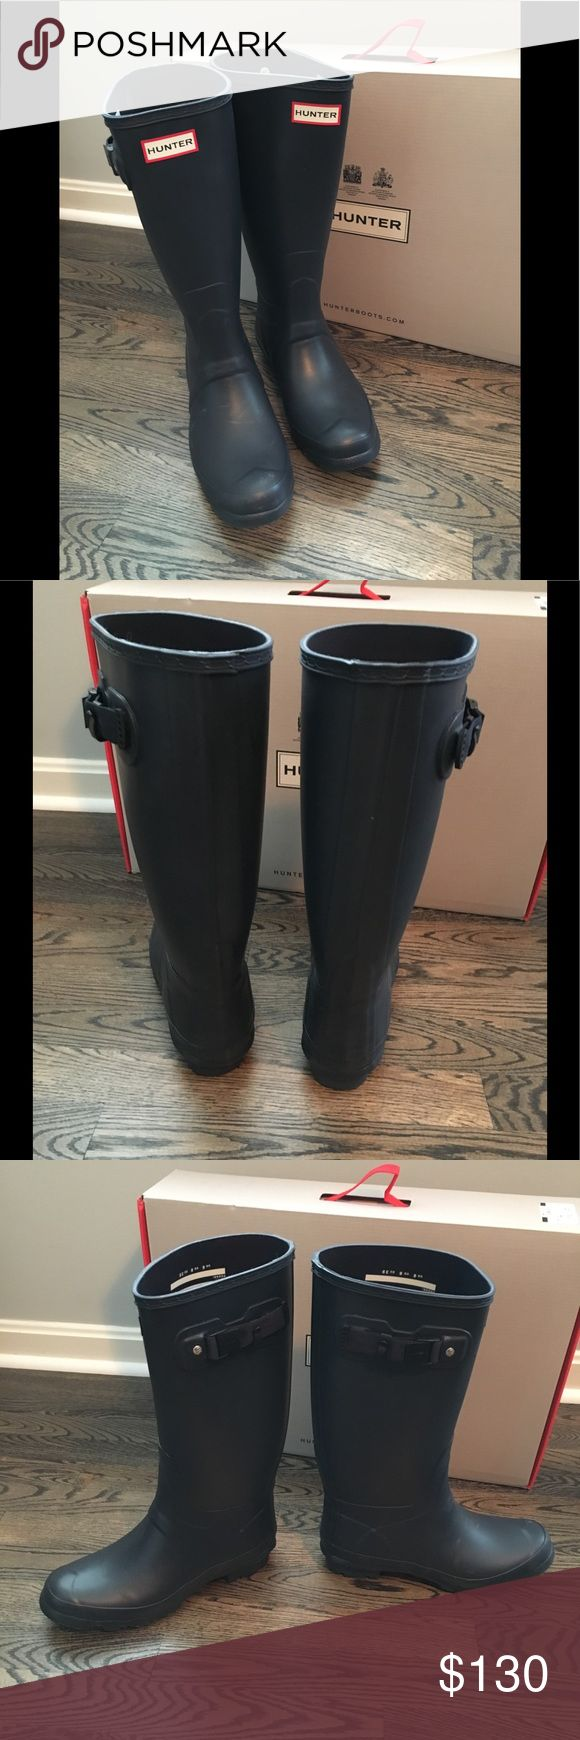 New In Box Hunter Original Huntress Boots New in Box Hunter Boots. Original Huntress boots. Navy size 8.                                                       BUNDLE DISCOUNT DOES NOT APPLY TO THIS ITEM! Hunter Shoes Winter & Rain Boots